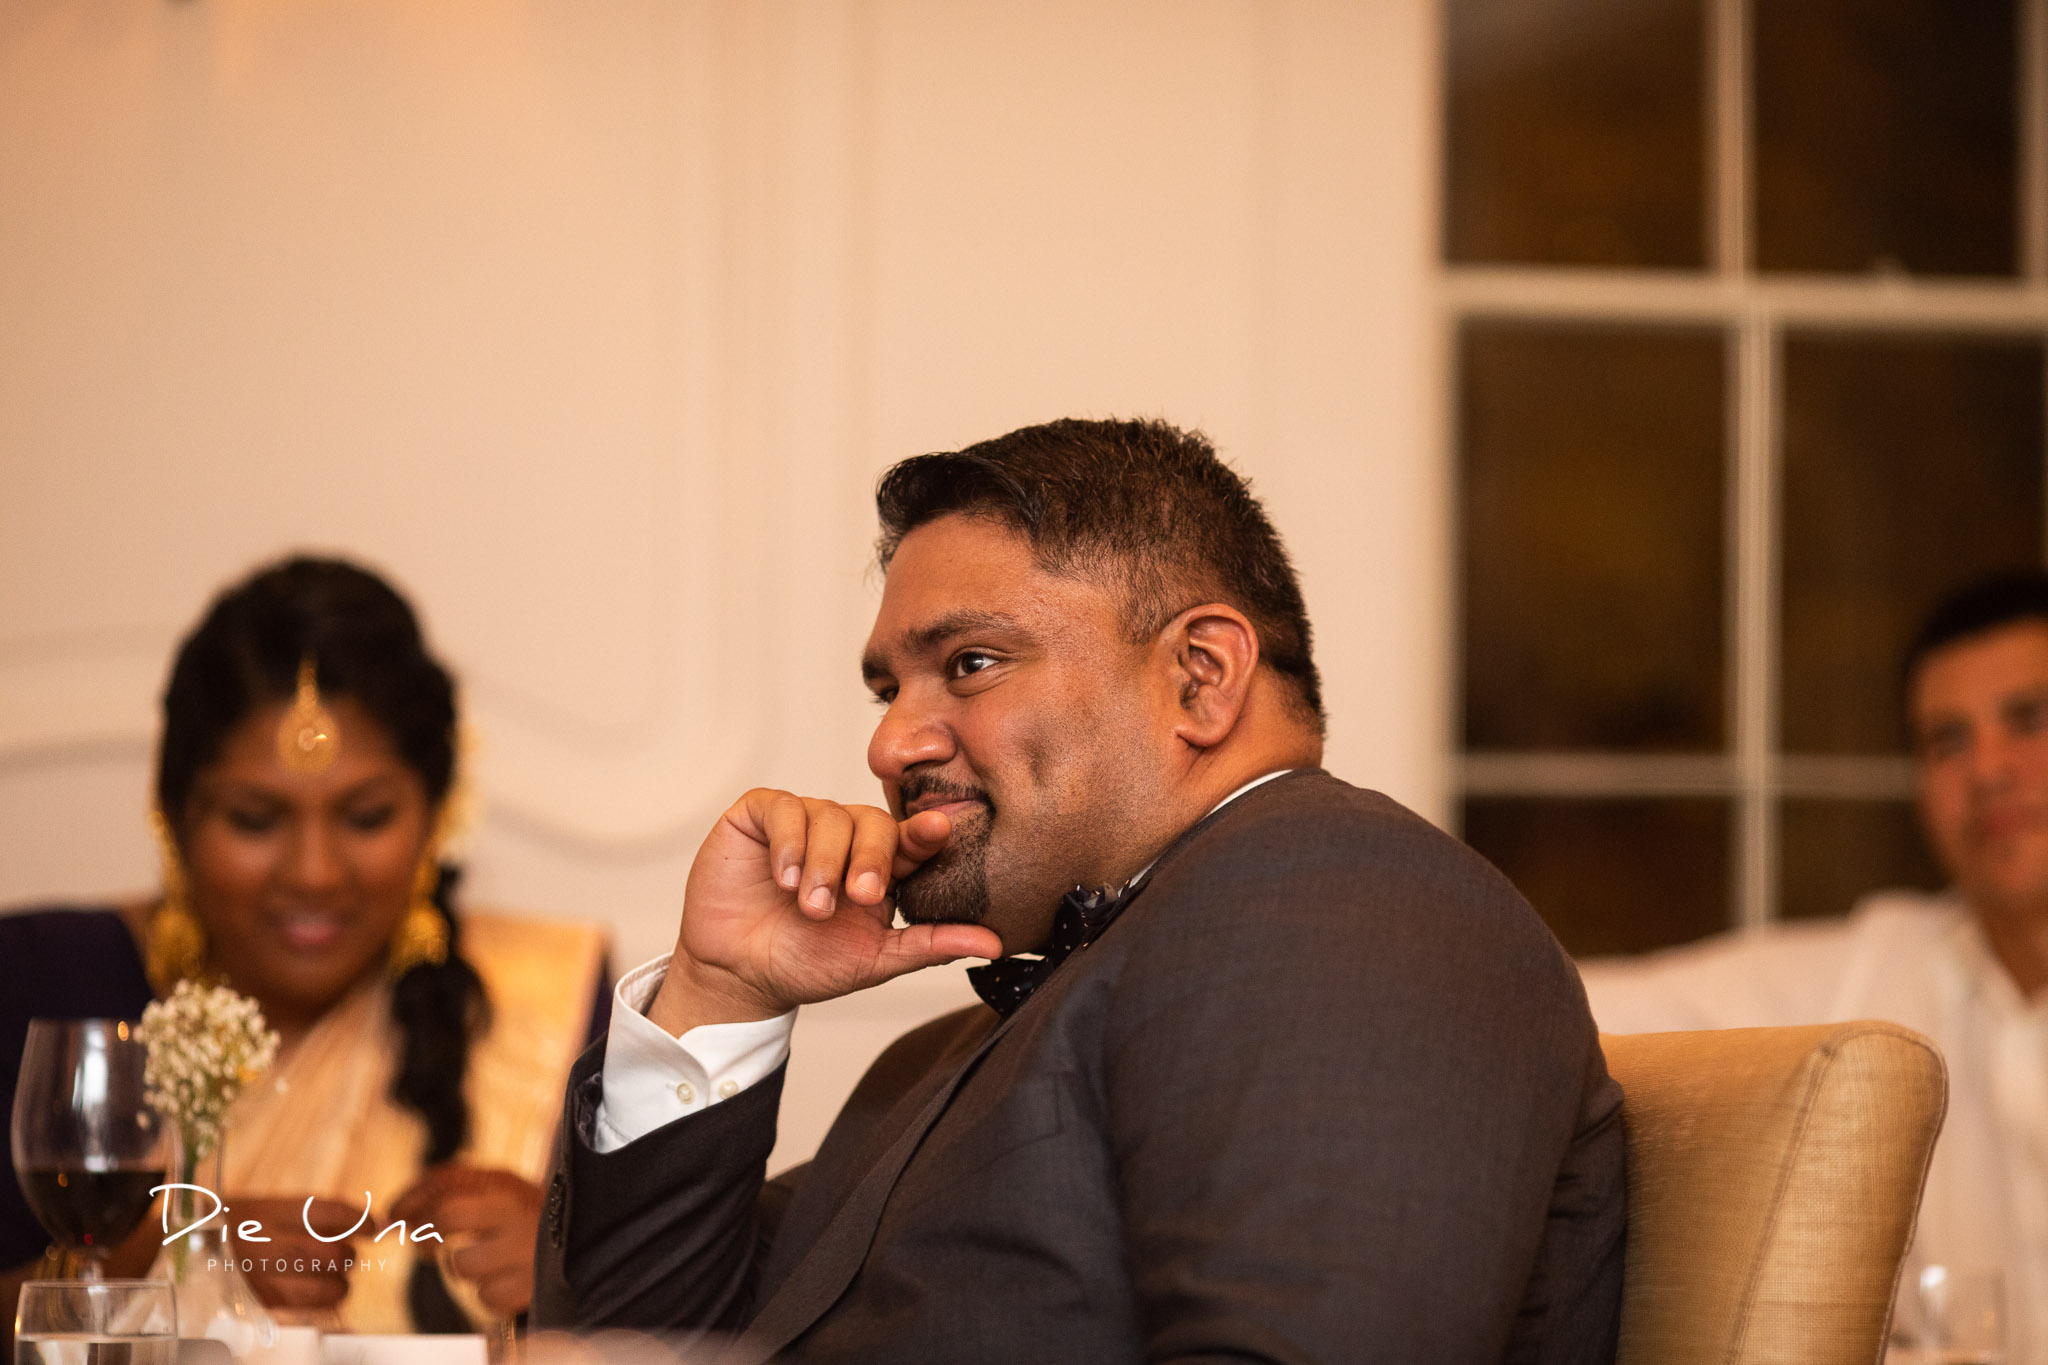 best man with a thoughtful look on his face during speeches.jpg